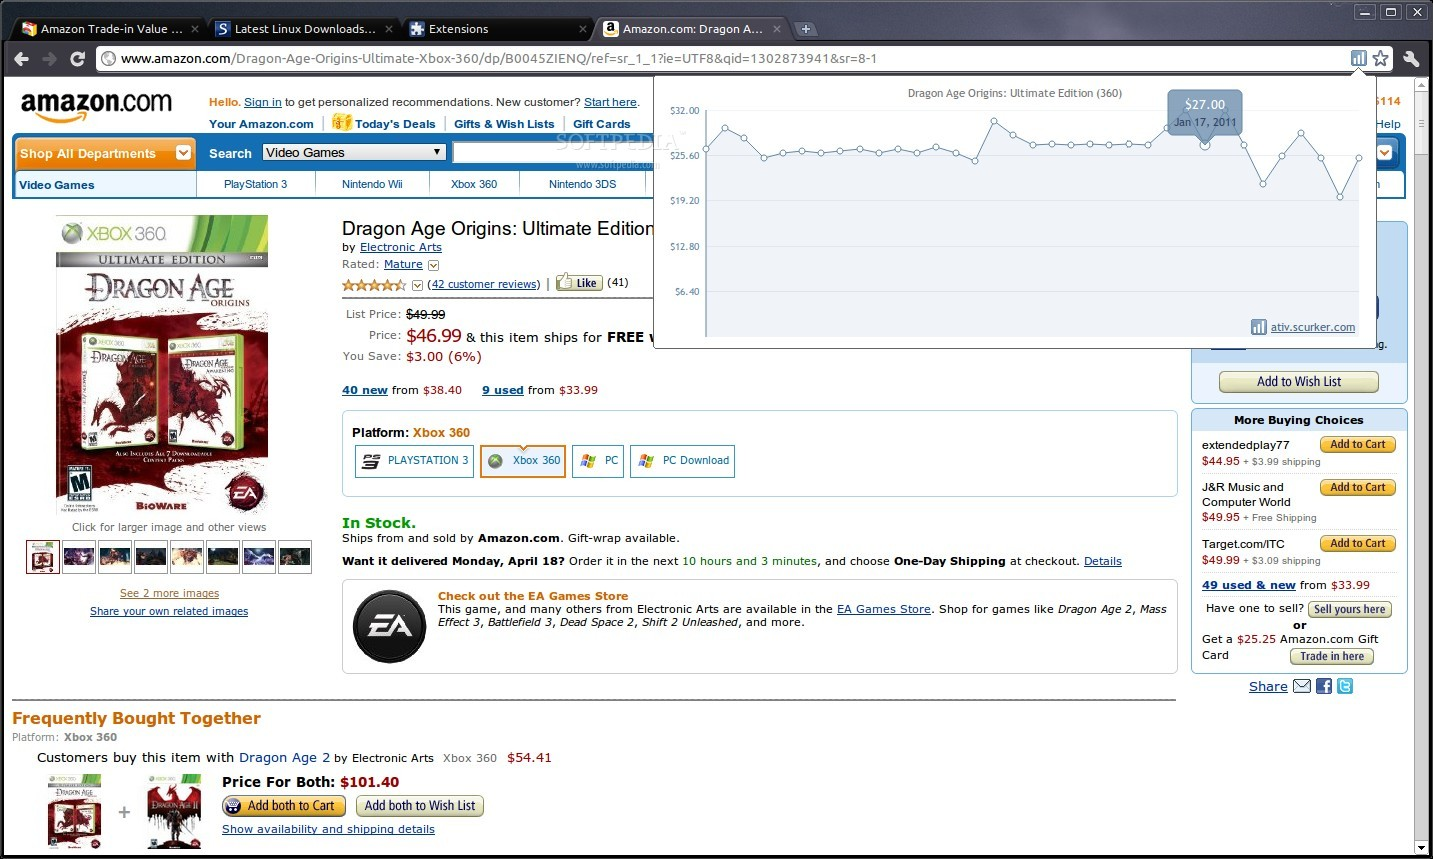 Amazon Trade-in Value History screenshot 1